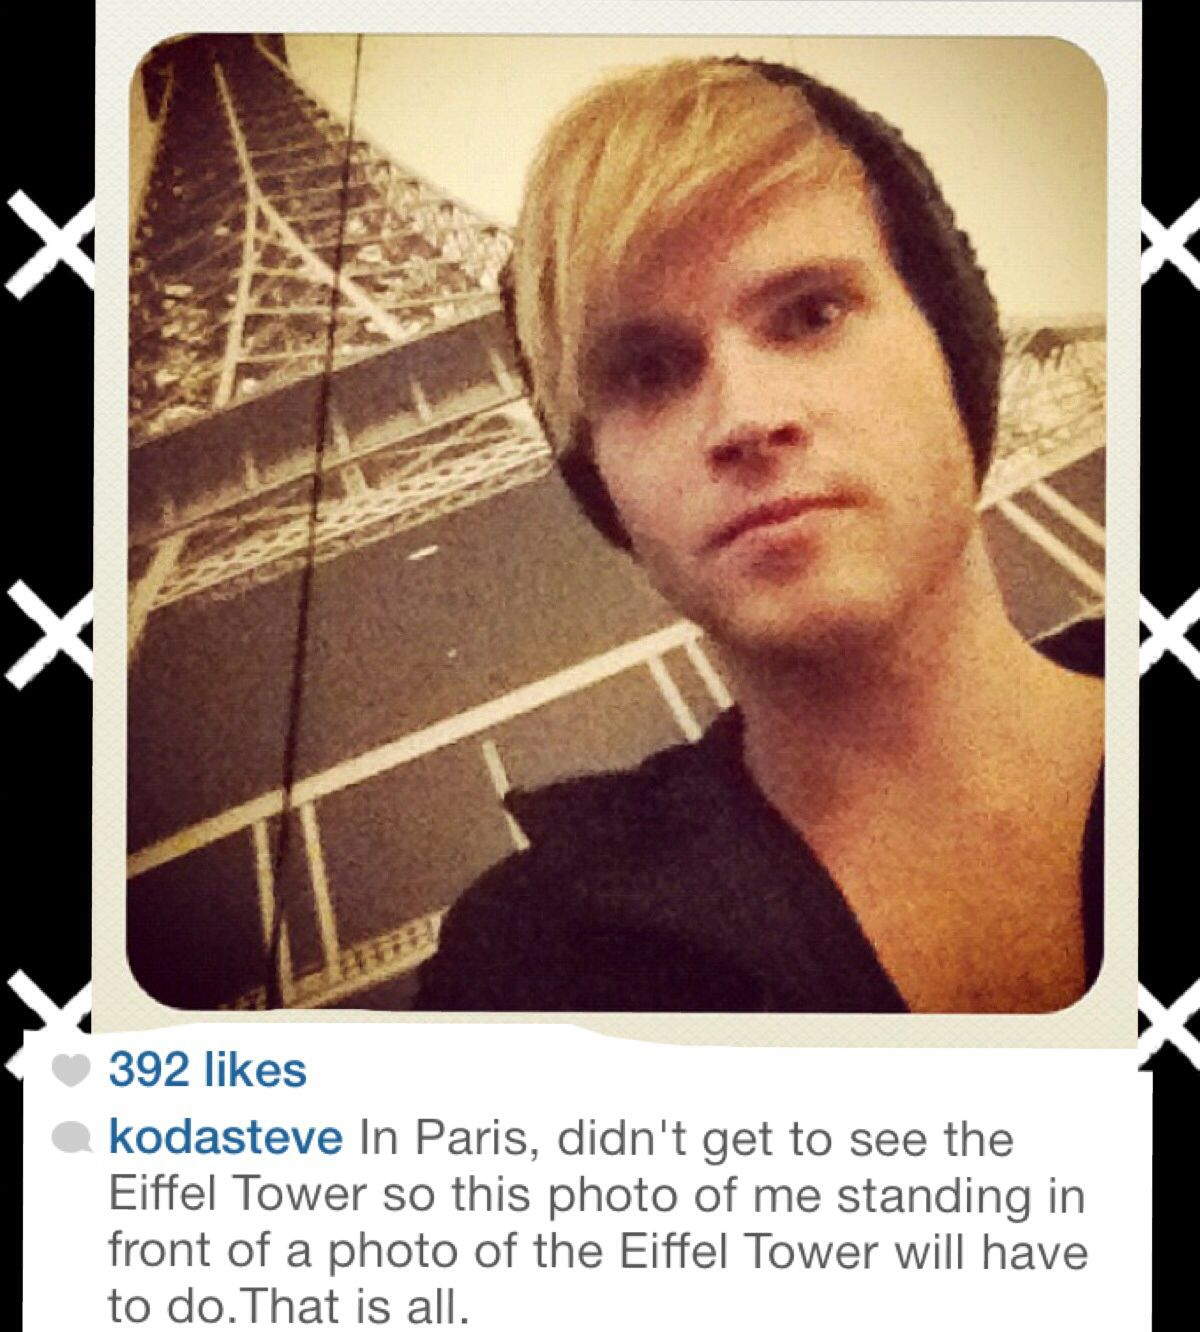 Famous Steves with kodaline ~ steve garrigan, i don't like to give leaders singers